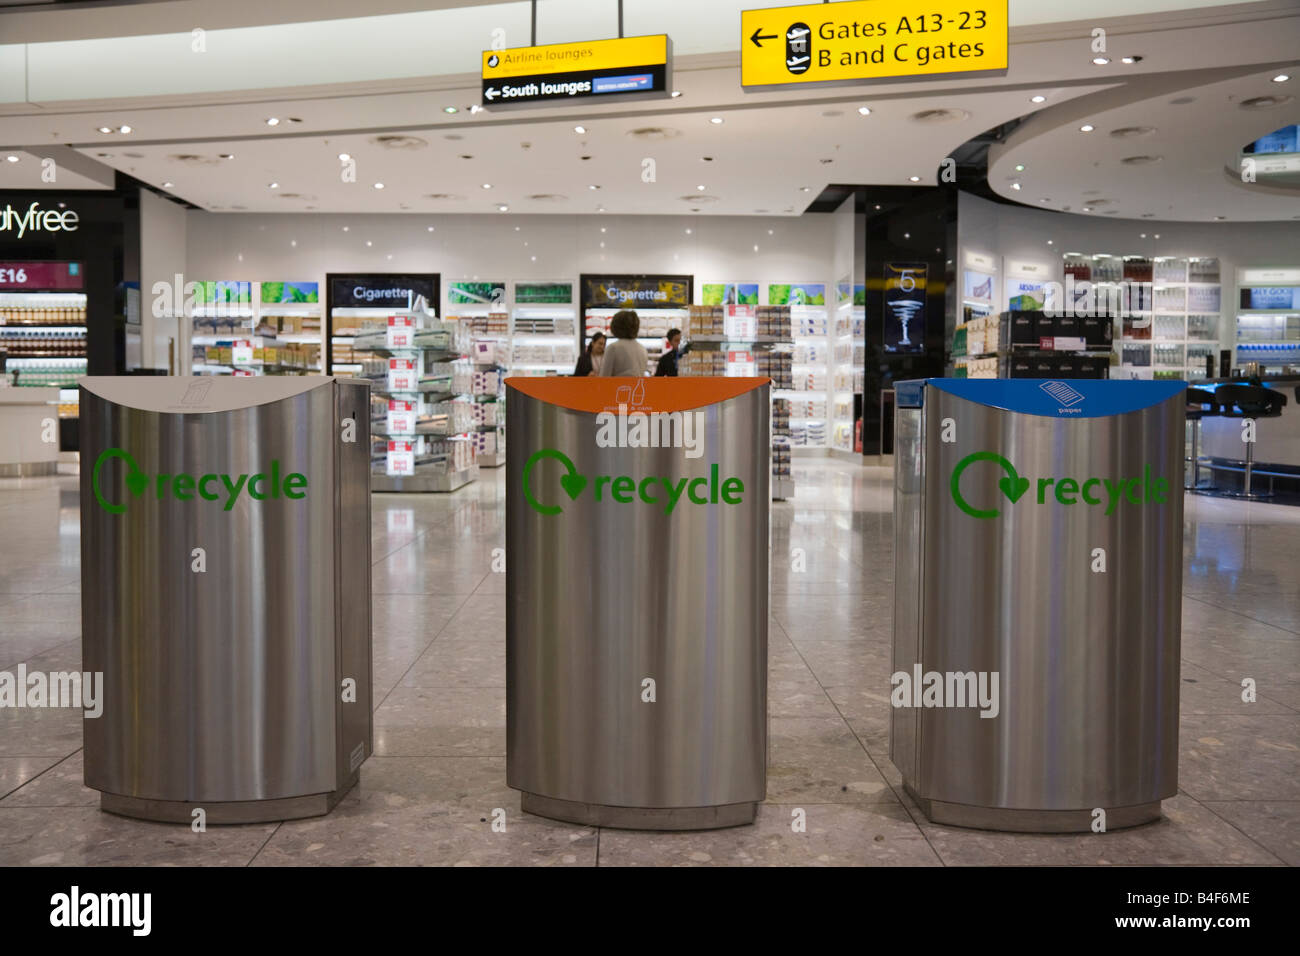 Stainless Steel Recycling Bins Britain Uk Three Colour Coded Stainless Steel Recycling Bins